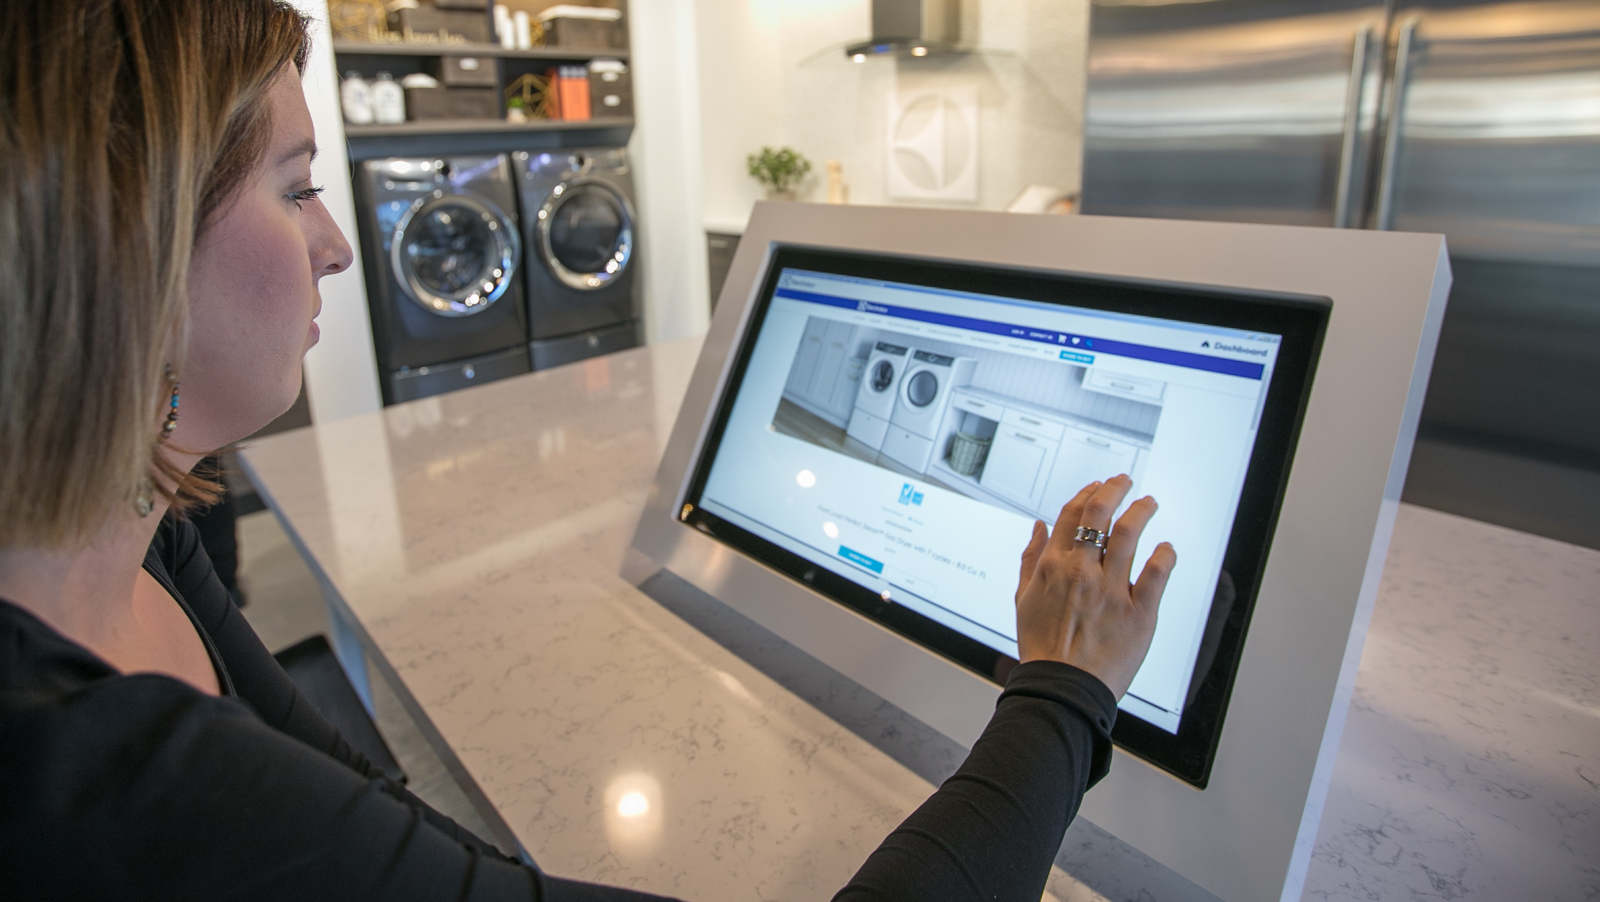 Woman using interactive display system to shop for appliances